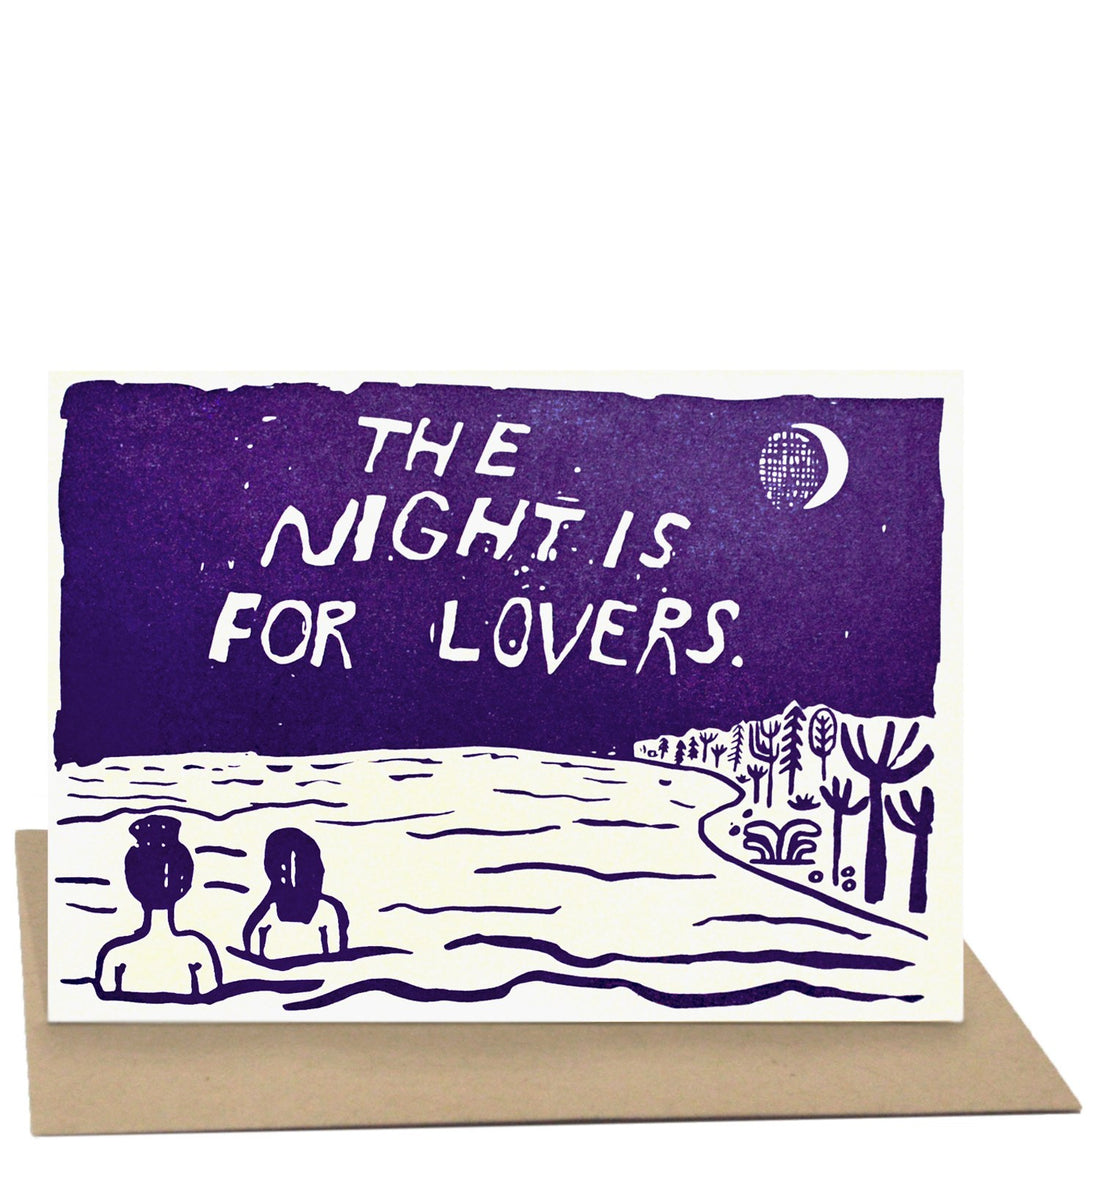 People I've Loved - The Night Card - Art/Prints - Iron and Resin